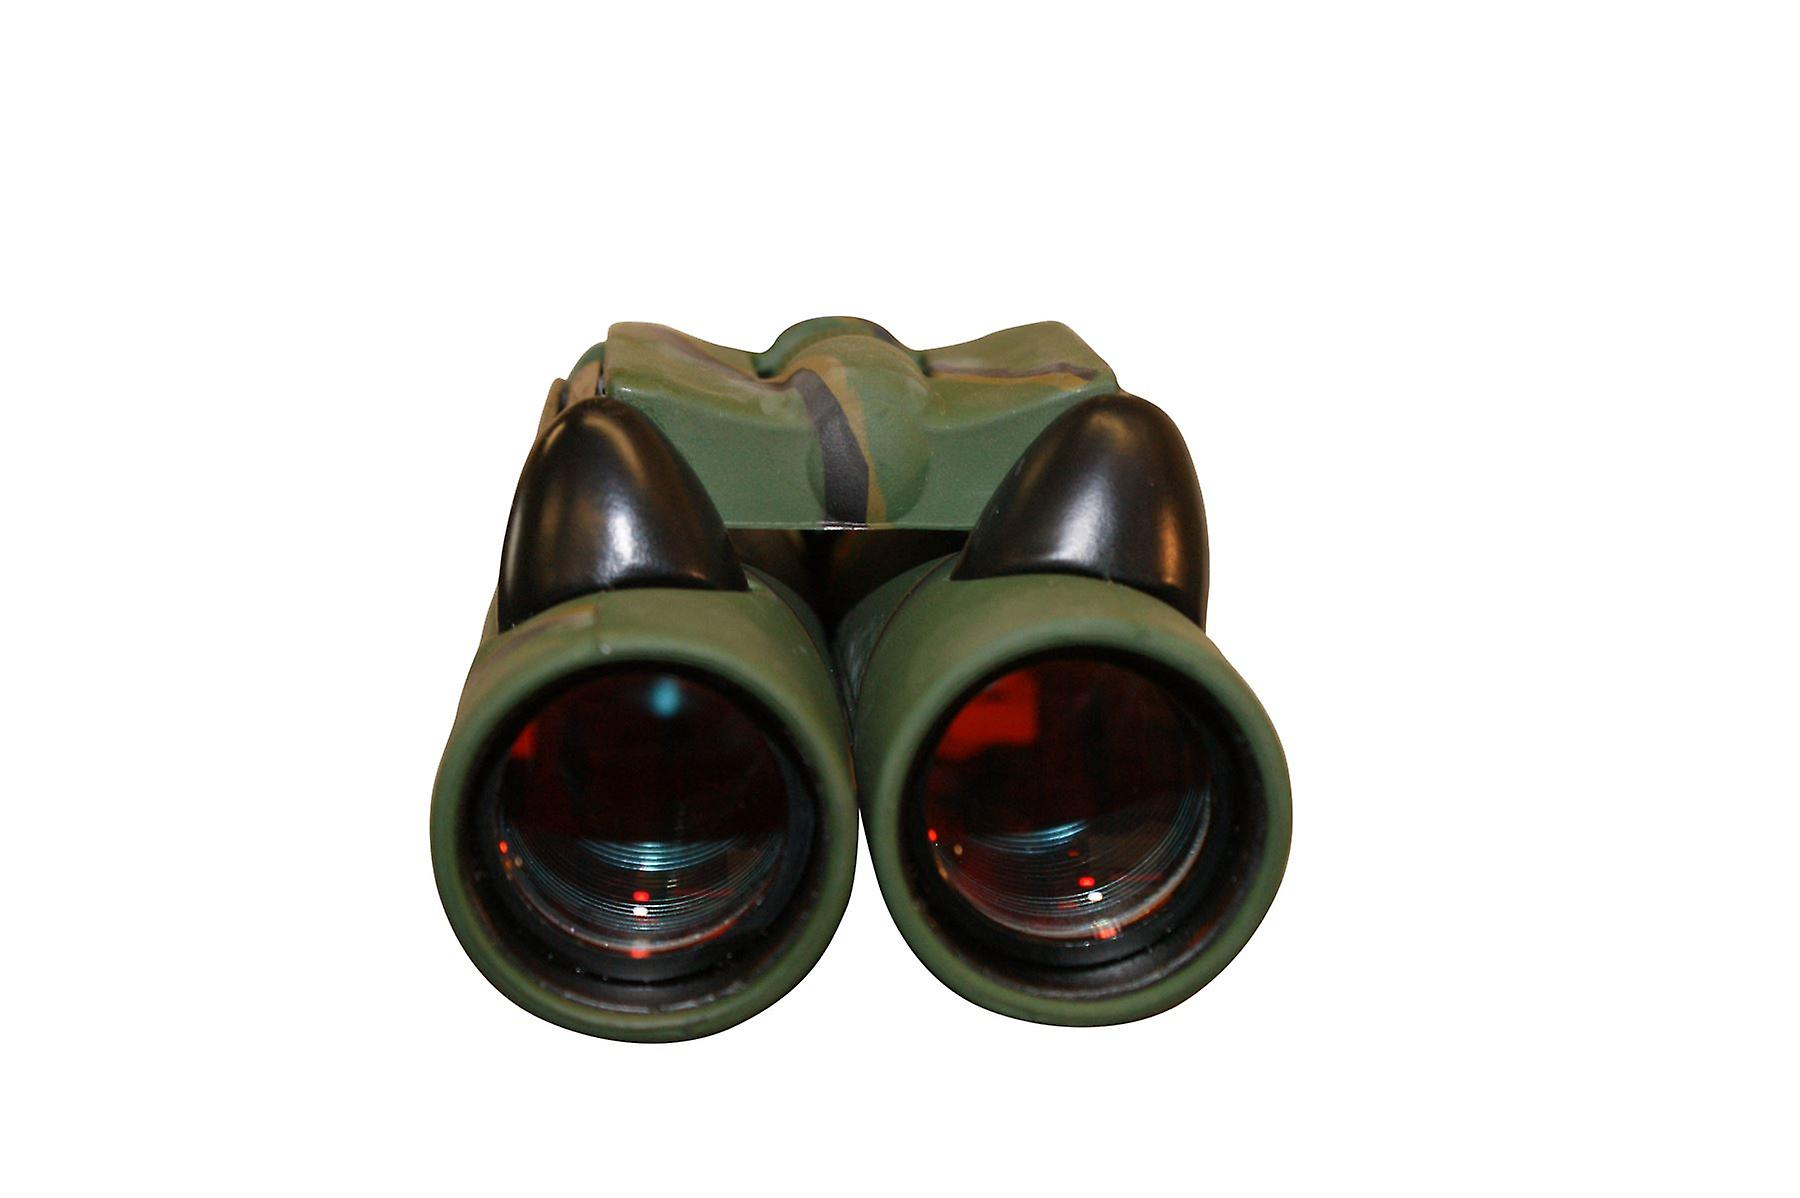 8x21 Pocket Compact Folding Binoculars With Carry Case Birdwatching